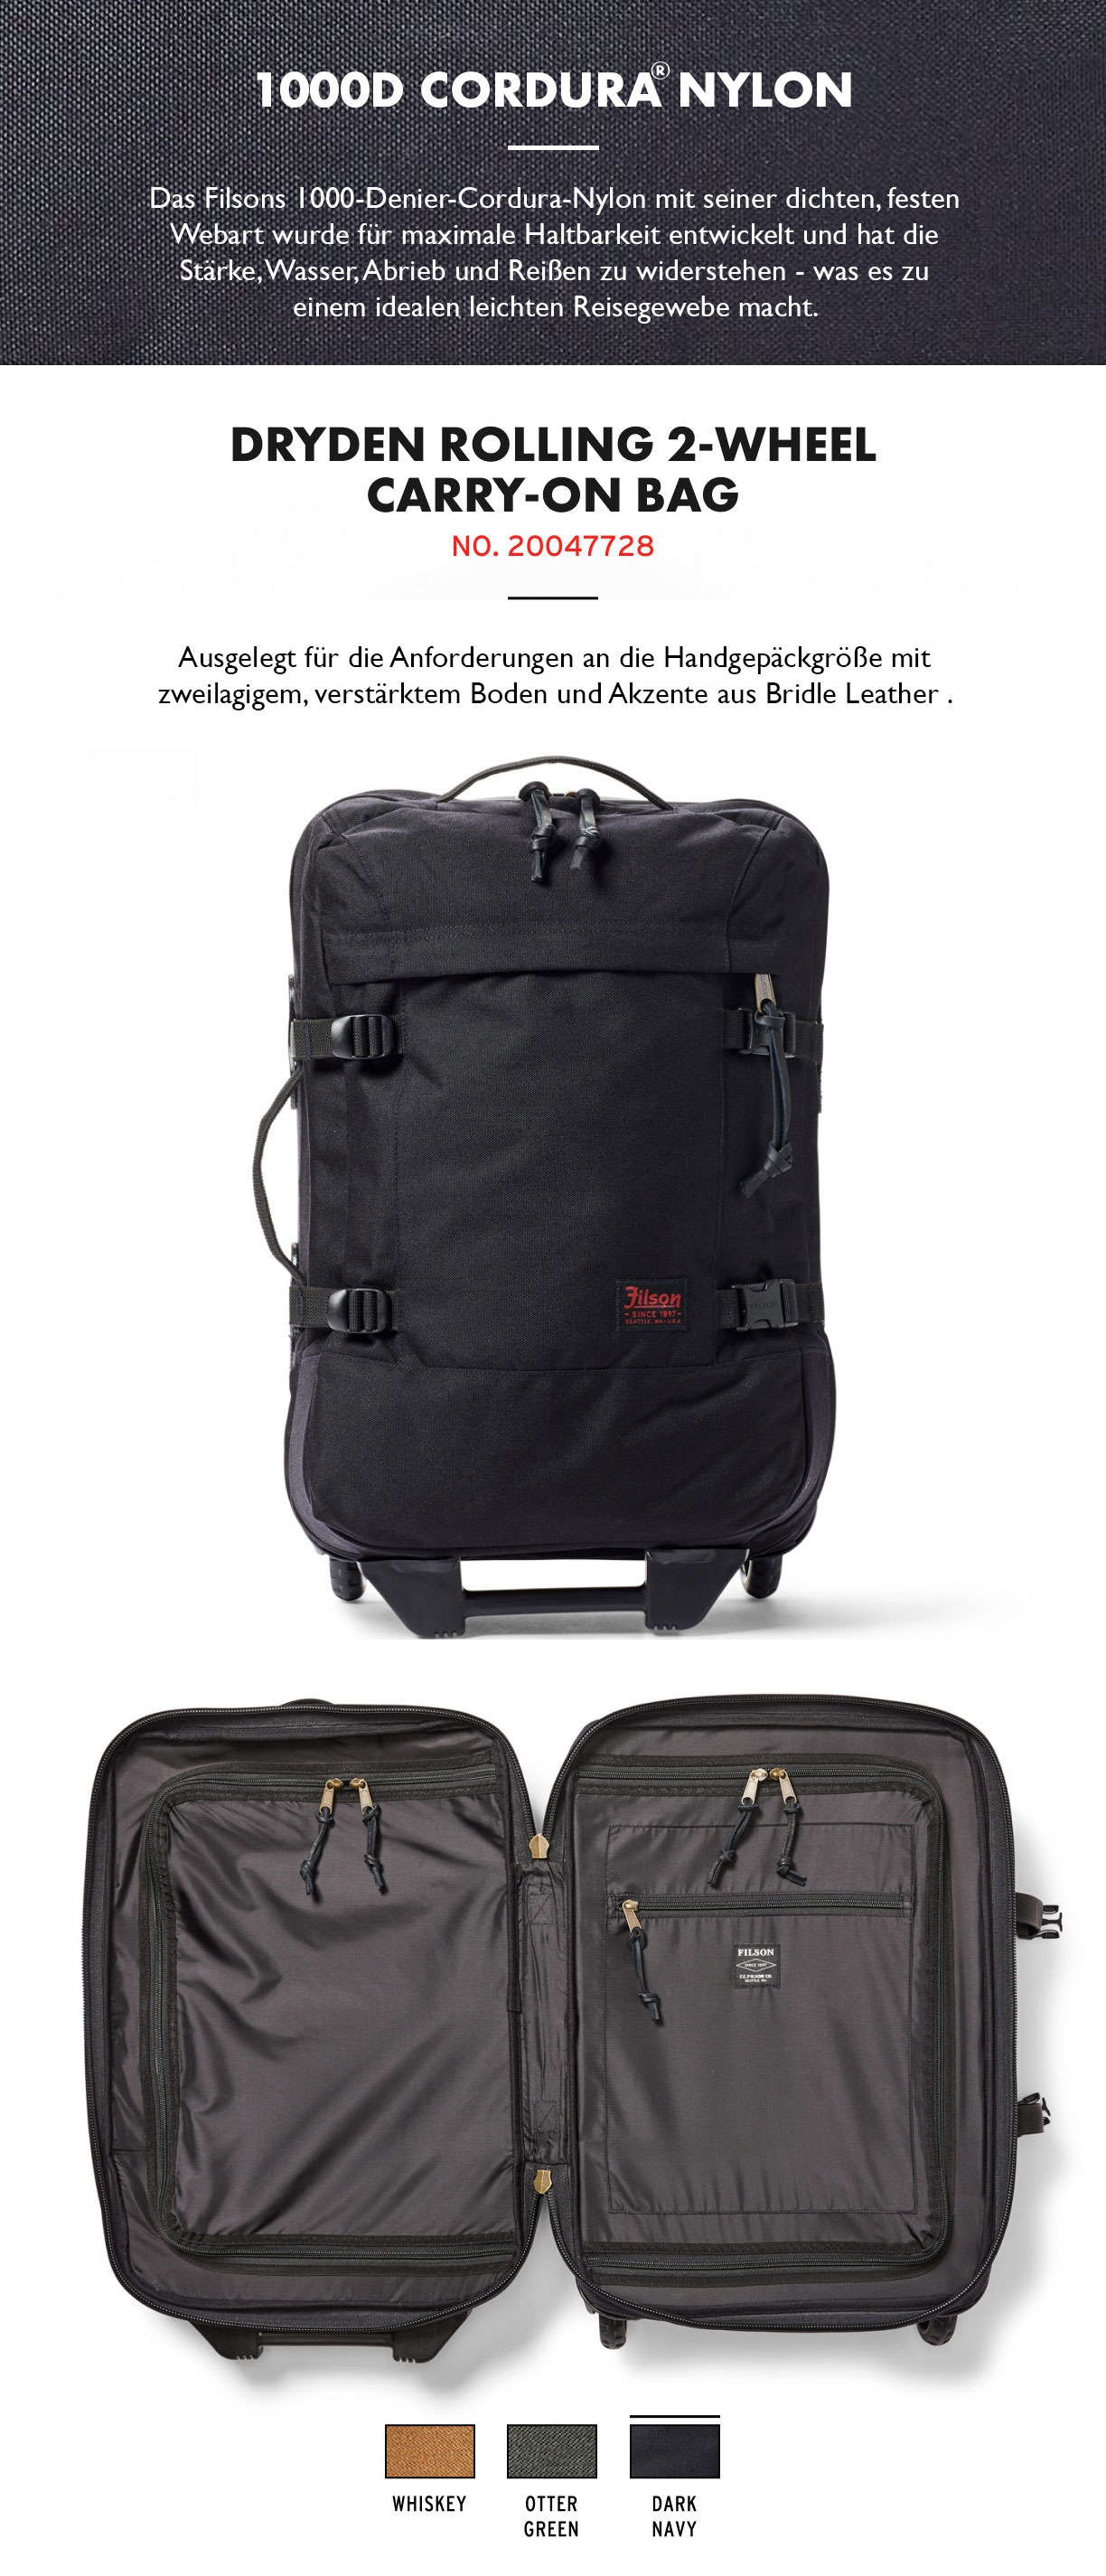 Filson Dryden 2-Wheel Rolling Carry-On Bag Dark Navy Produktinformationen